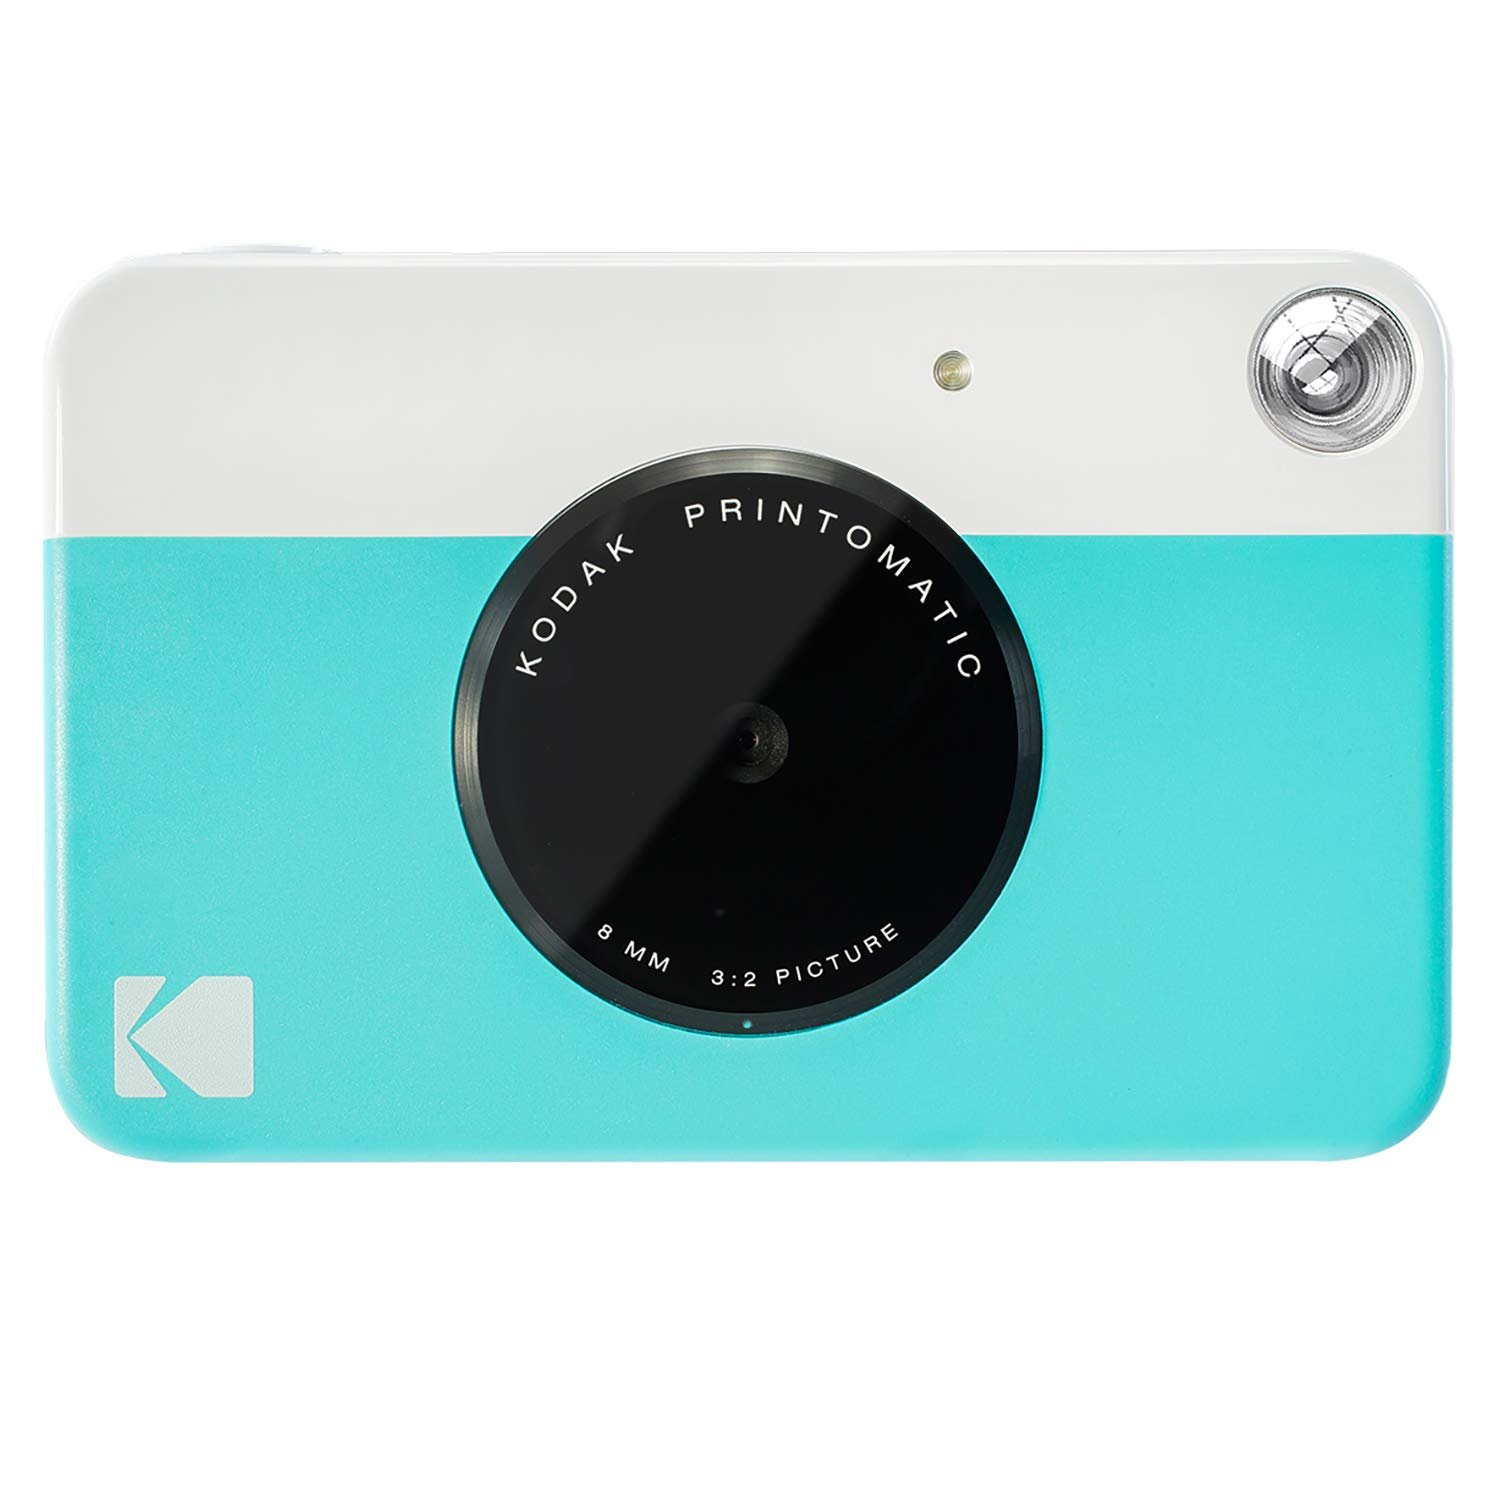 Kodak PRINTOMATIC Digital Instant Print Camera (Blue), Full Color Prints On Zink 2x3 Sticky-Backed Photo Paper - Print Memories Instantly by Kodak